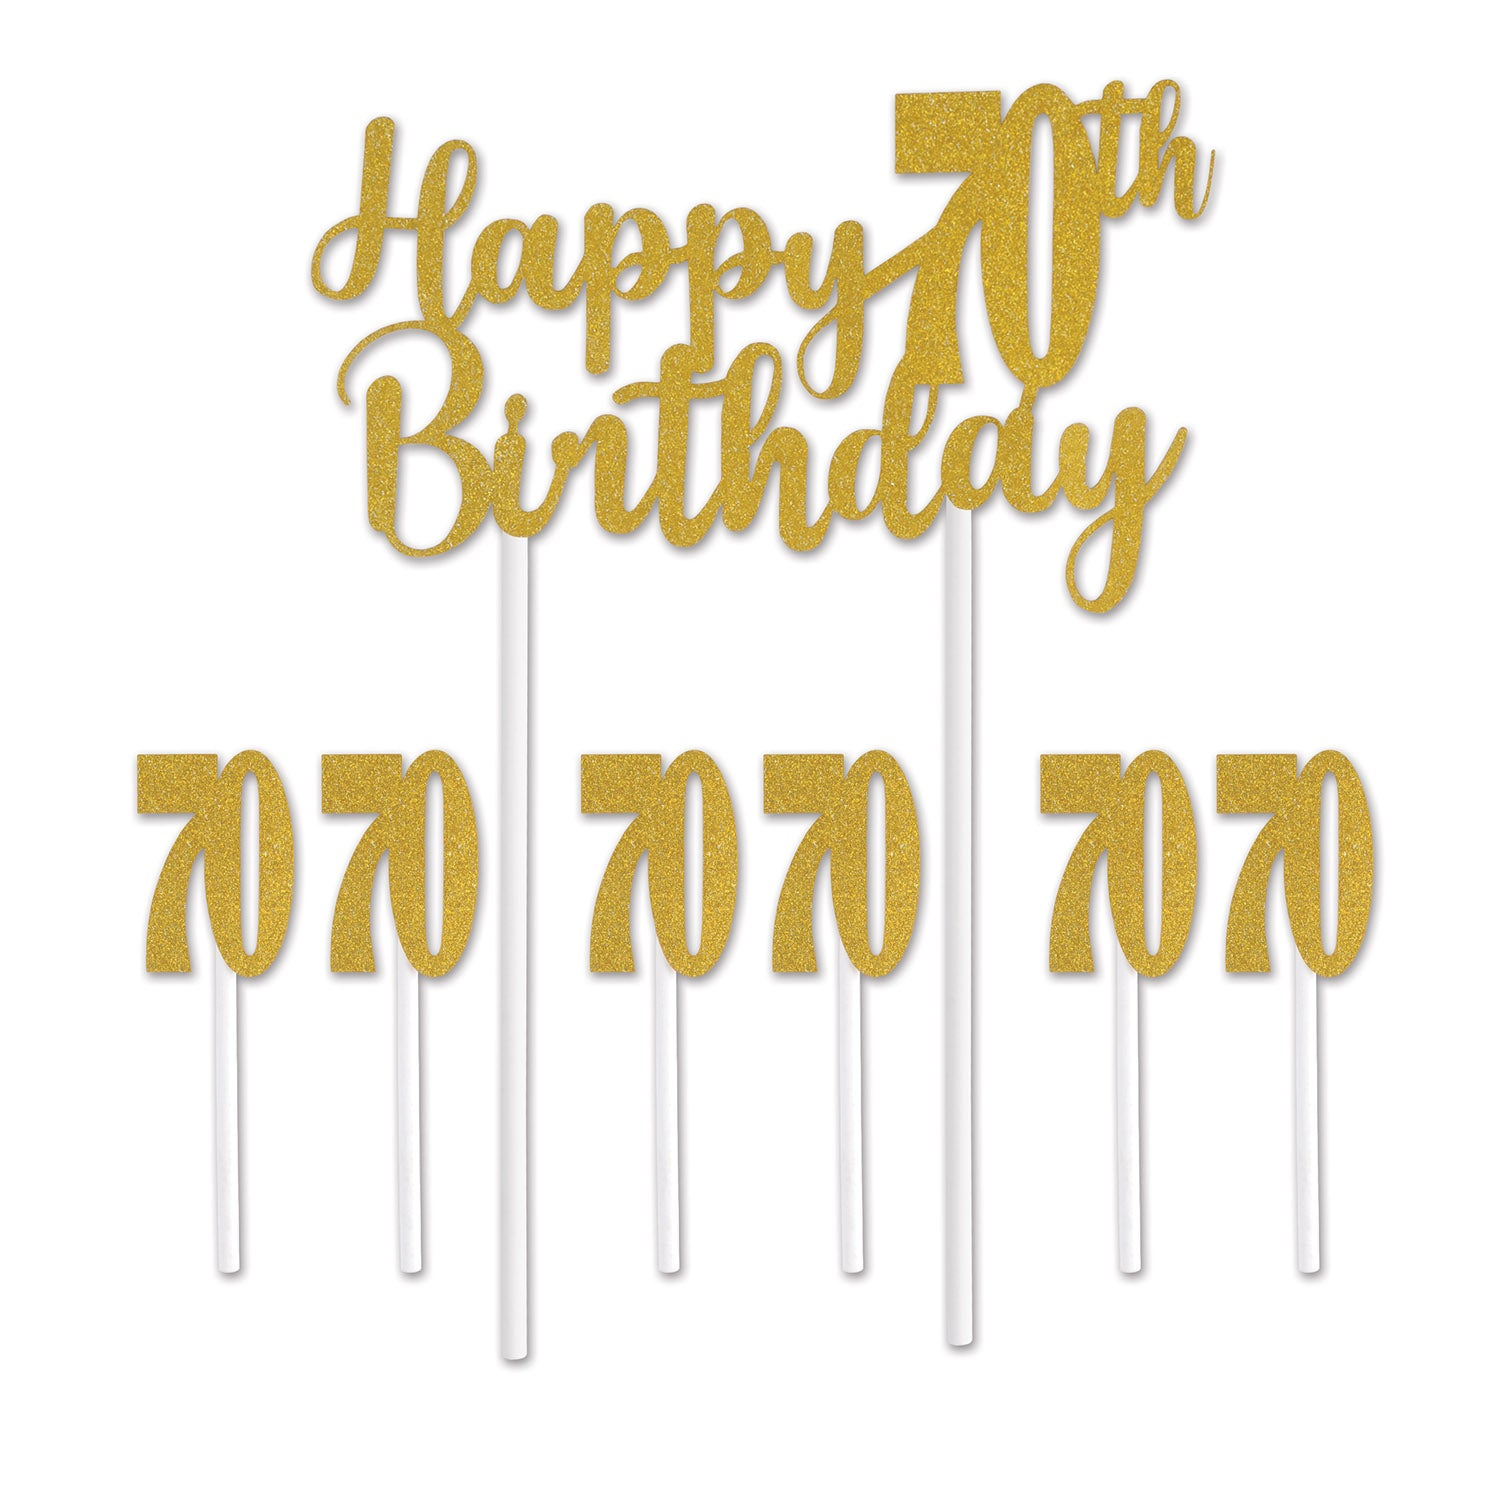 Happy 70th Birthday Cake Topper by Beistle - 70th Birthday Party Decorations